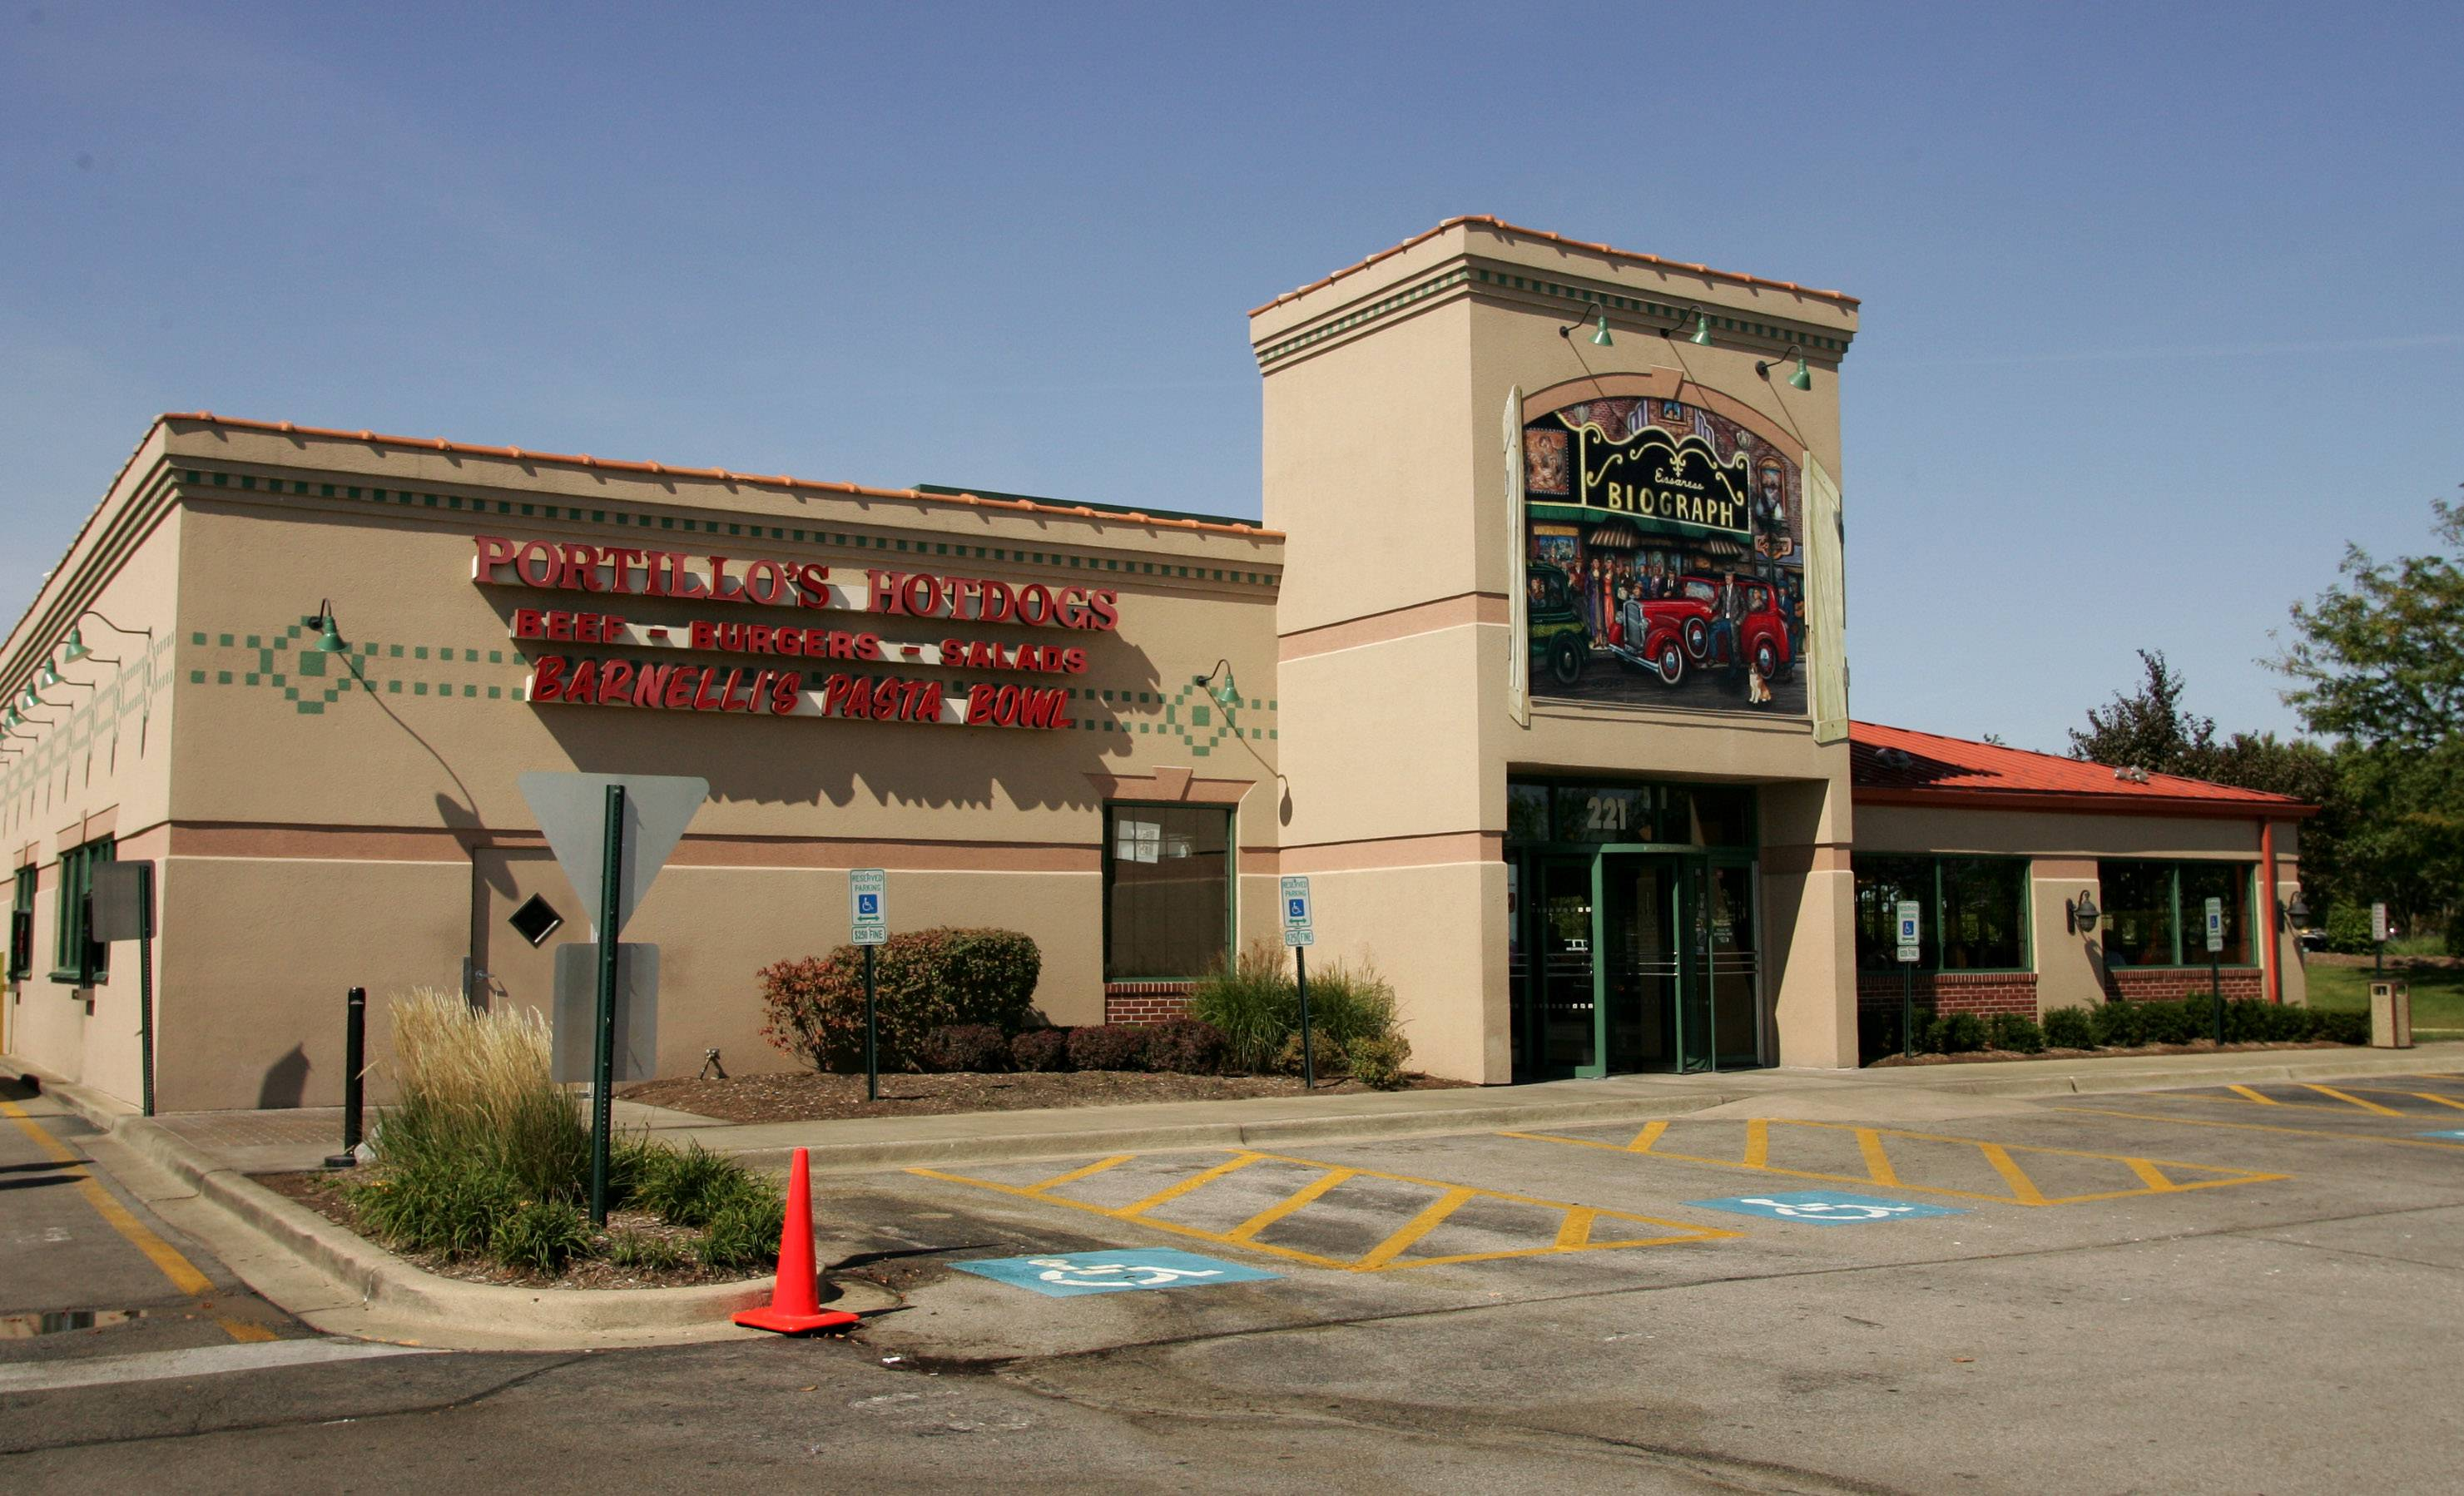 Portillo's has experienced significant growth over the past 50 years and operates 38 locations across Illinois, Indiana, California and Arizona, including this one in Vernon Hills. Berkshire Partners is now buying the company.